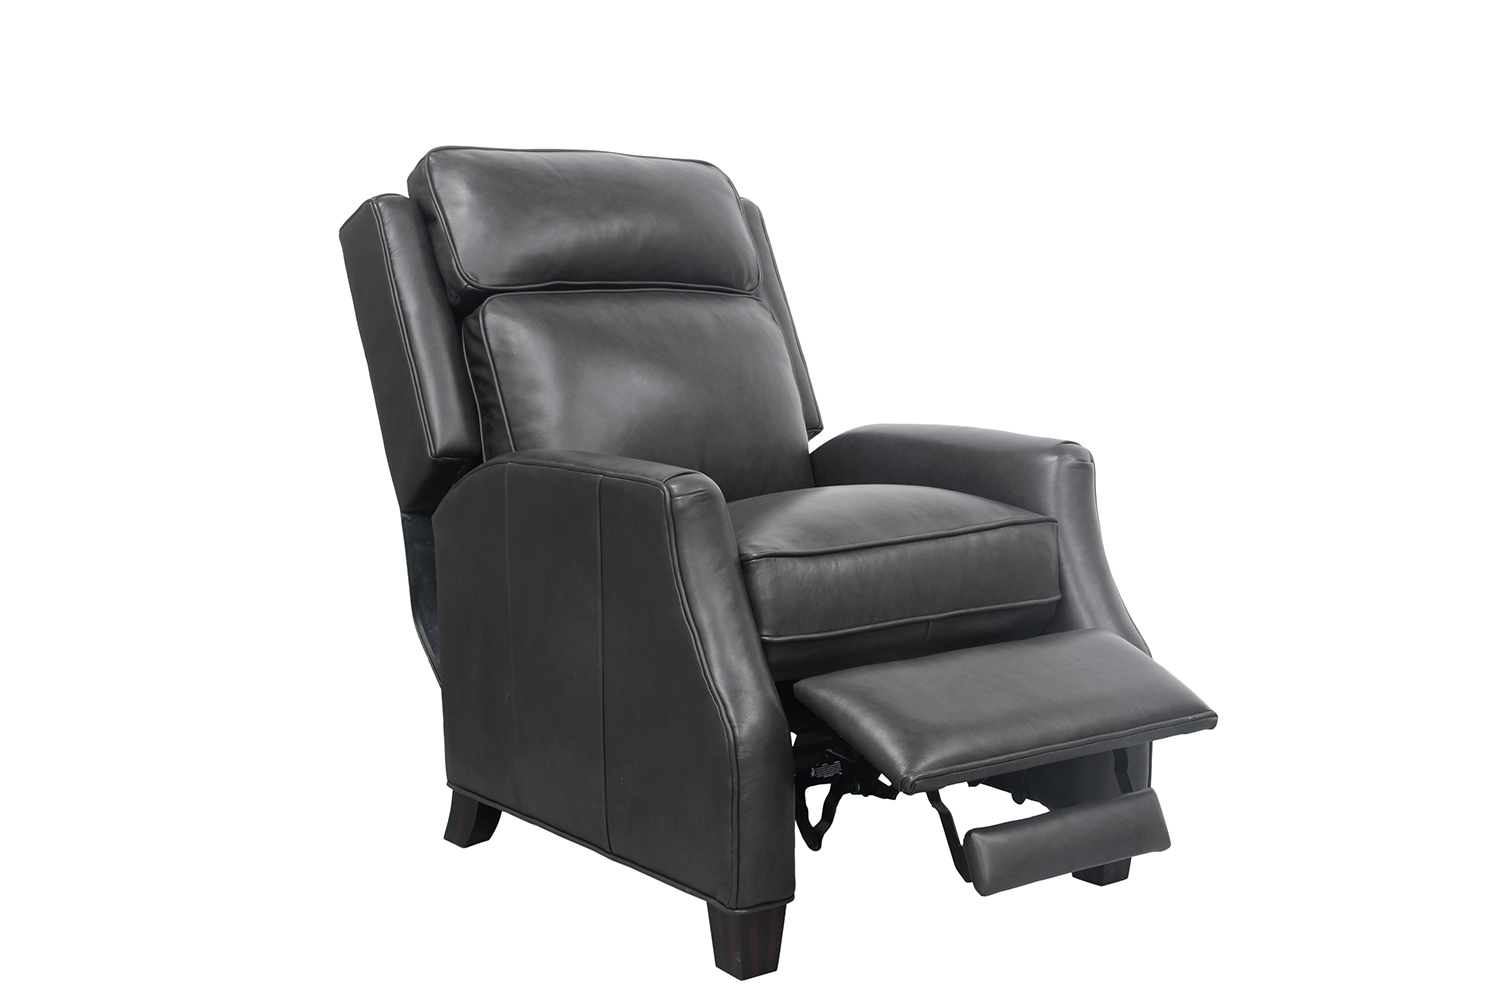 Barcalounger Nixon Recliner Chair - Shoreham Gray/All Leather